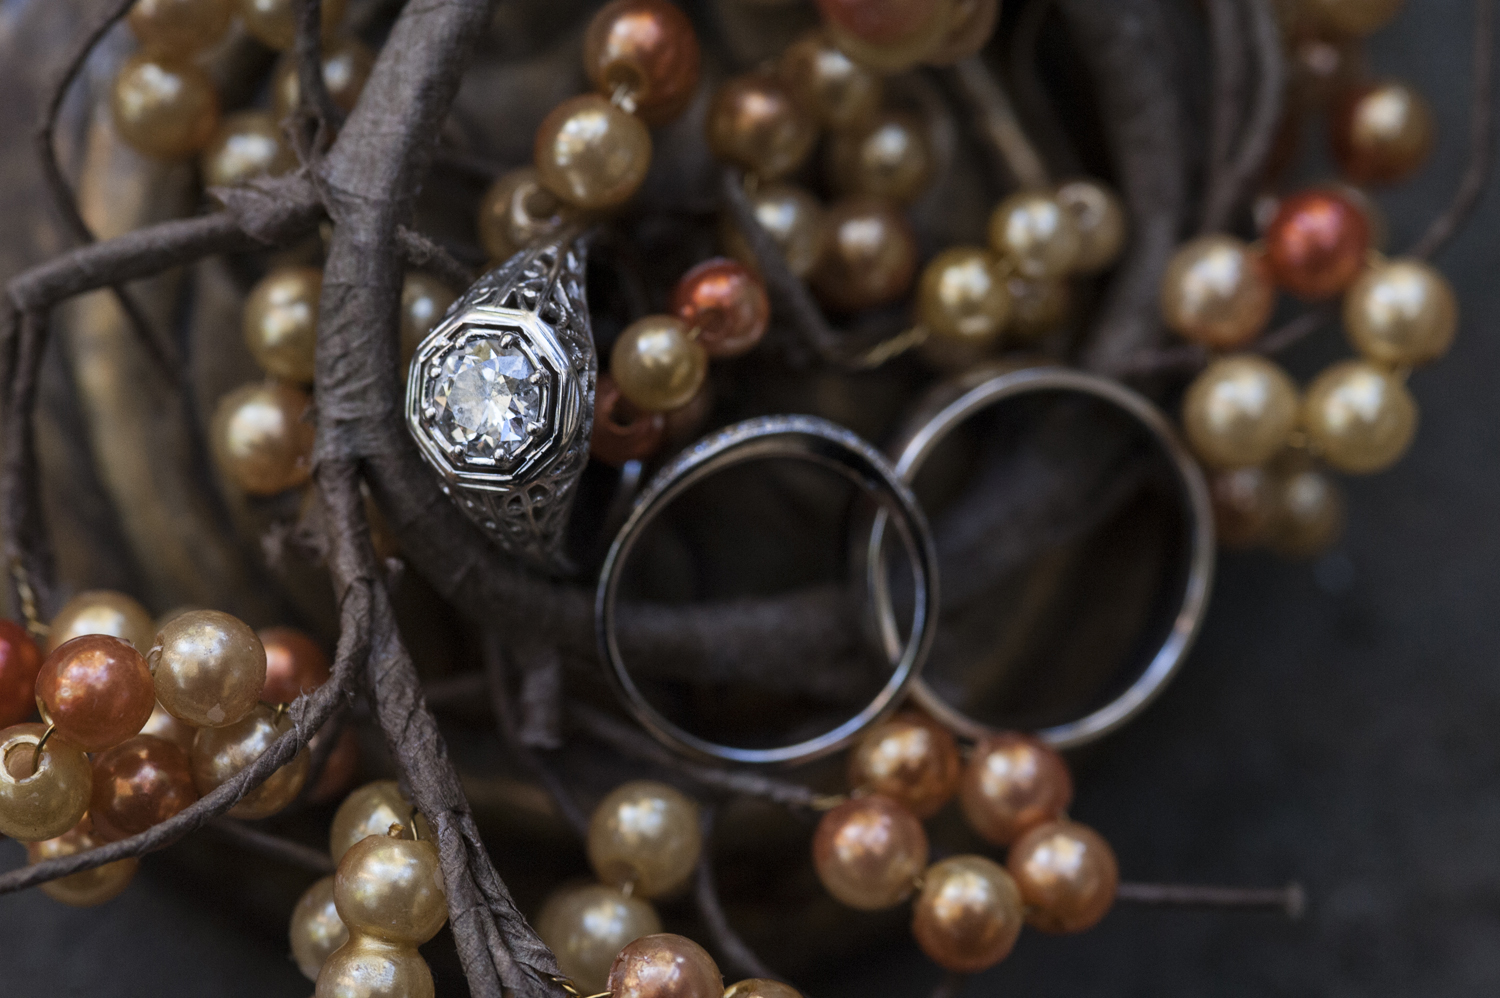 detail of wedding rings against ring box and fall decor. NJ wedding photographer